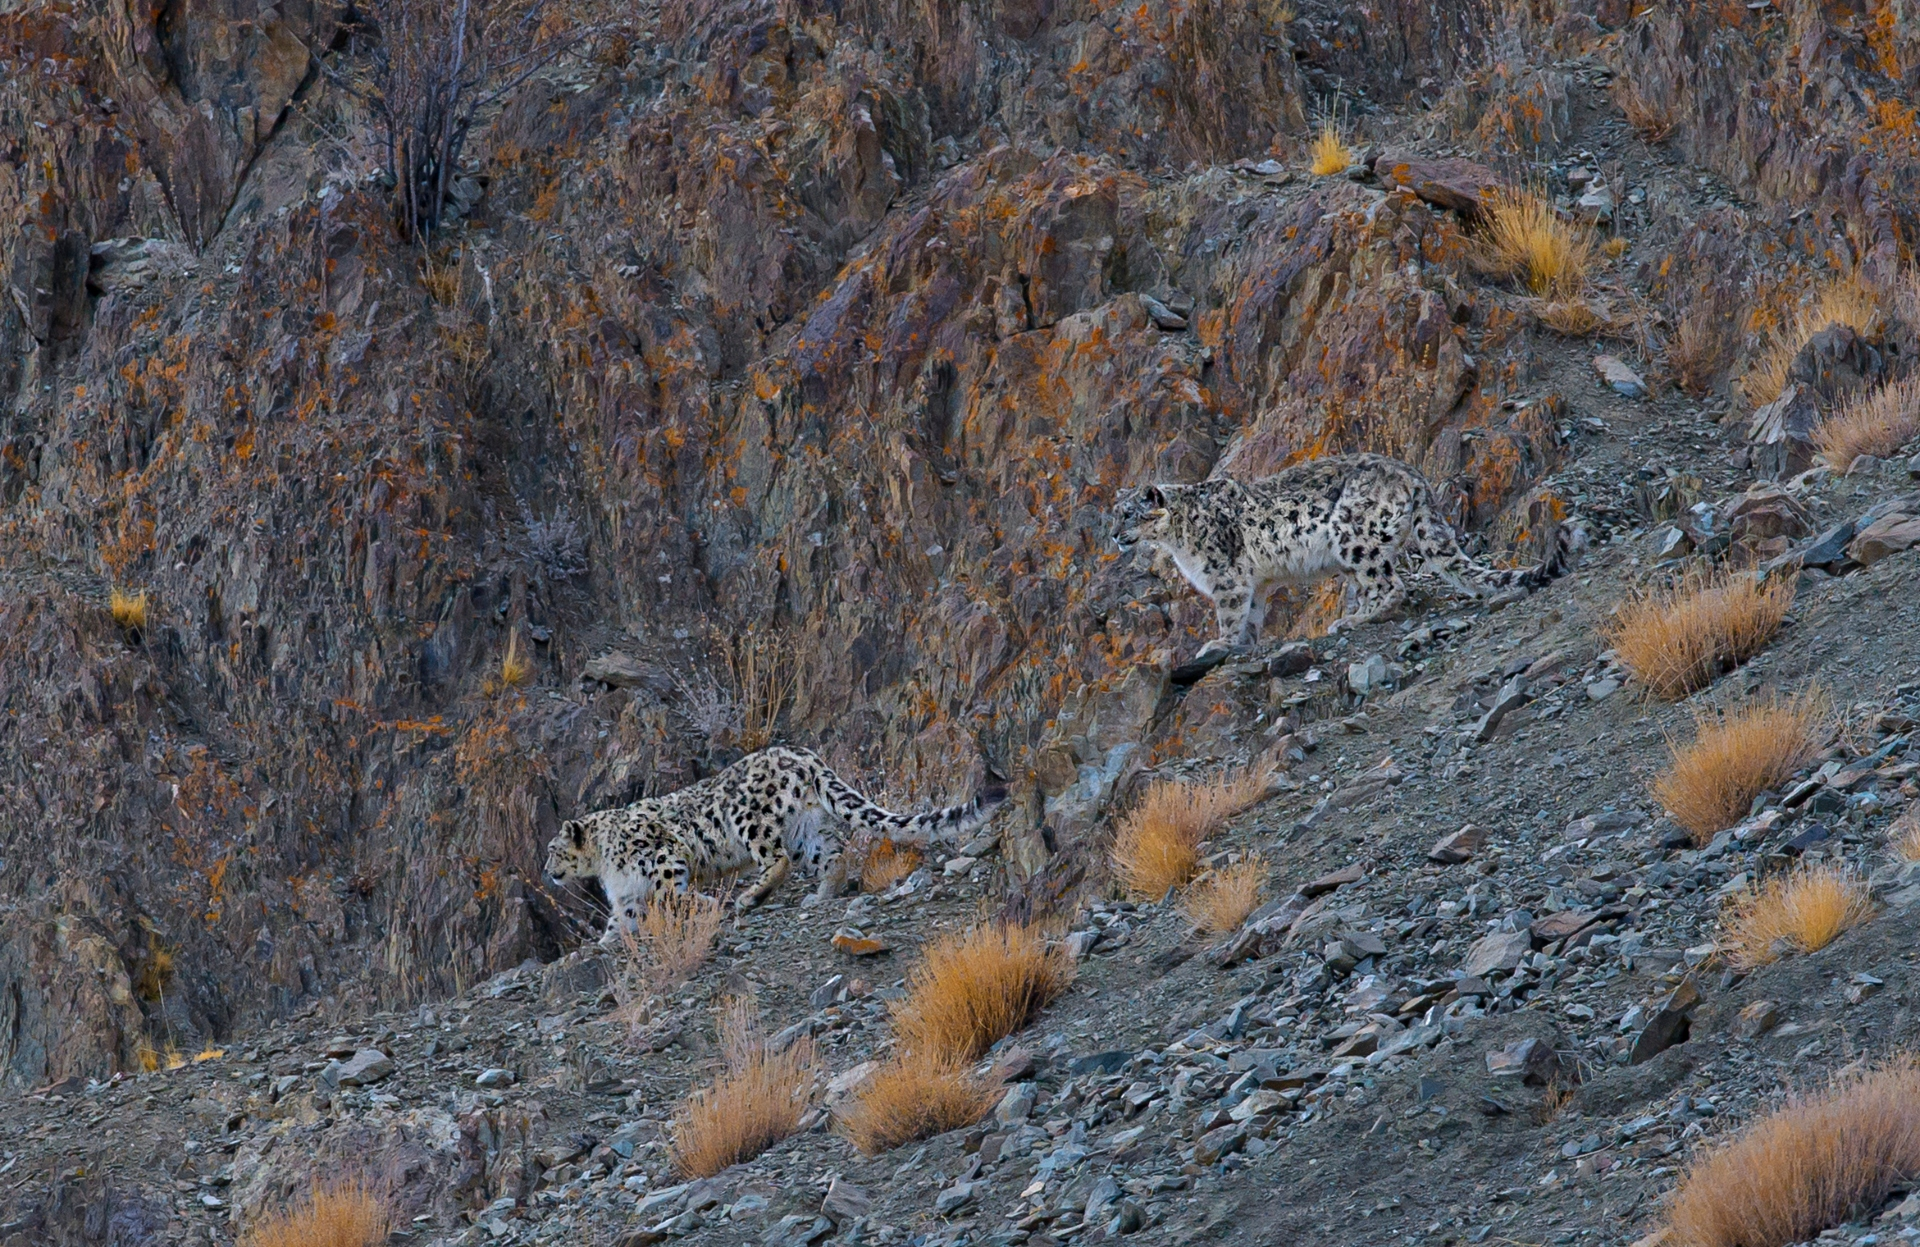 (Top) The snow leopard's exceptionally long and bushy tail helps it balance itself in its steep mountainous habitats and keep itself warm while resting. (Above) Snow leopards are medium-sized carnivores, slightly smaller than the common leopard. They are genetically closer to tigers than to leopards.  Photos: Dhritiman Mukherjee